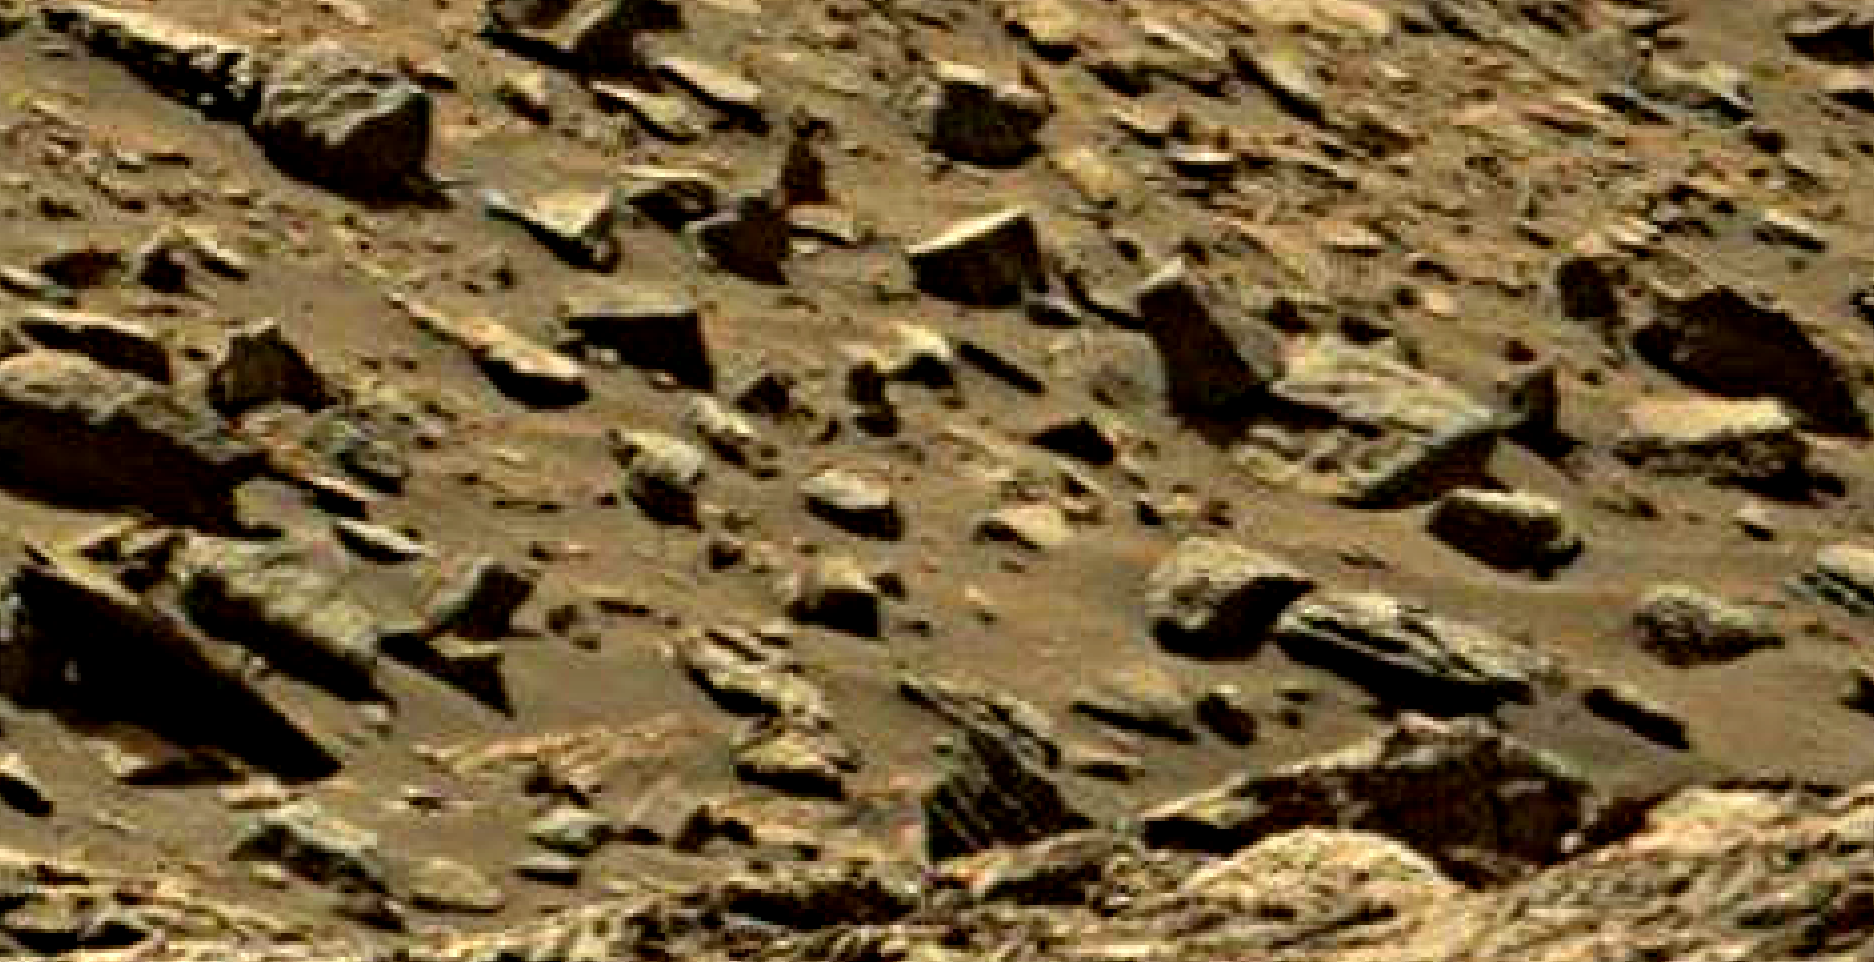 mars sol 1434 anomaly artifacts 6 was life on mars